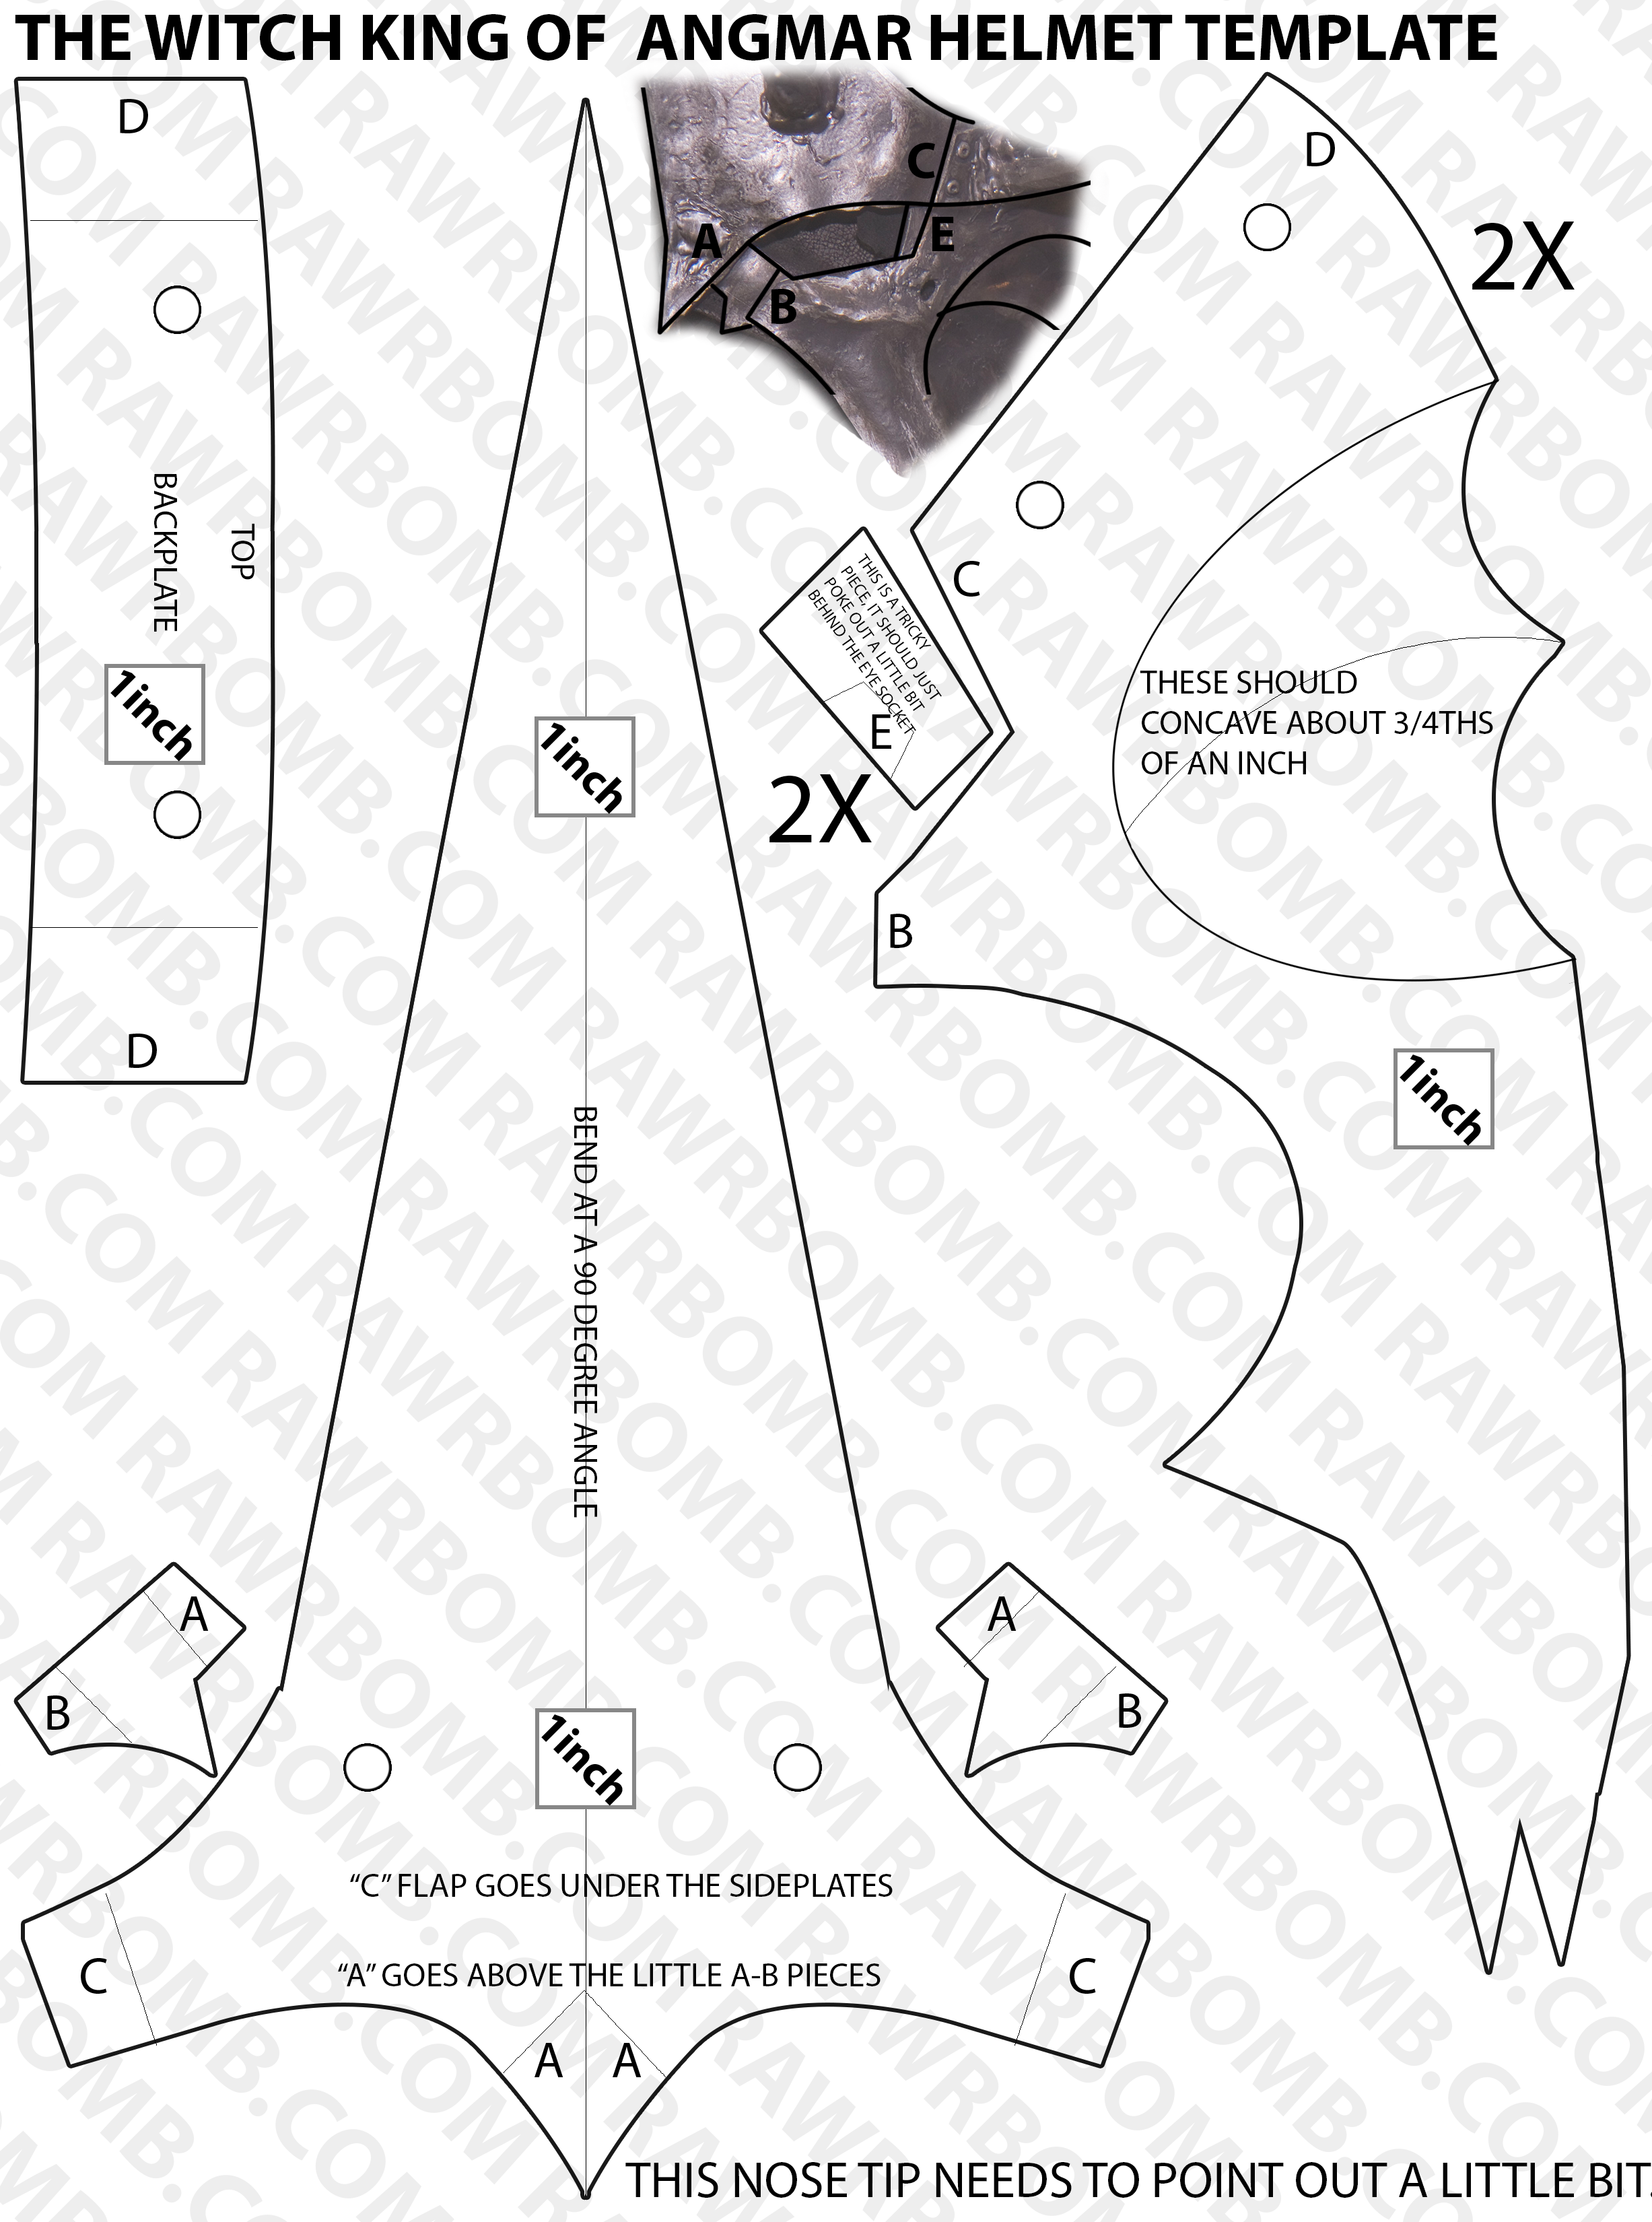 paper knight helmet template - witch king of angmar finished with templates 12 29 2012